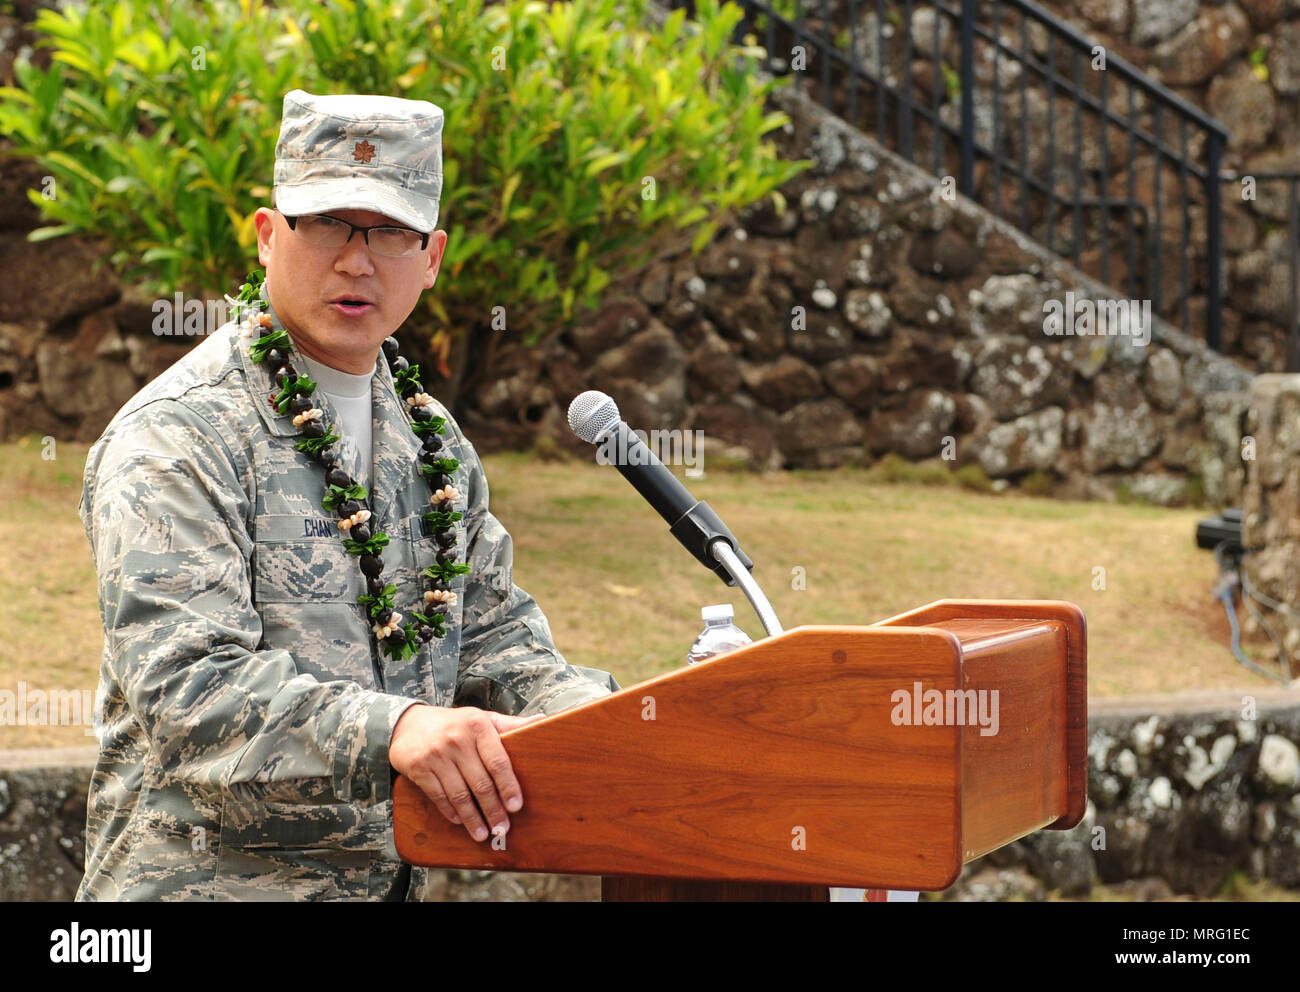 Maj. Edmond Chan, Detachment 3 commander, speaks to his unit during the Detachment 3 Change of Command Ceremony, Kaena Point, Hawaii, June 9, 2017.  Detachment 3 is a component of the 21st Space Operations Squadron, 50th Network Operations Group, 50th Space Wing, and is located on the western tip of Oahu.  It is the oldest and one of seven worldwide remote tracking stations in the Air Force Satellite Control Network.  (U.S. Air Force photo by Tech. Sgt. Heather Redman) - Stock Image